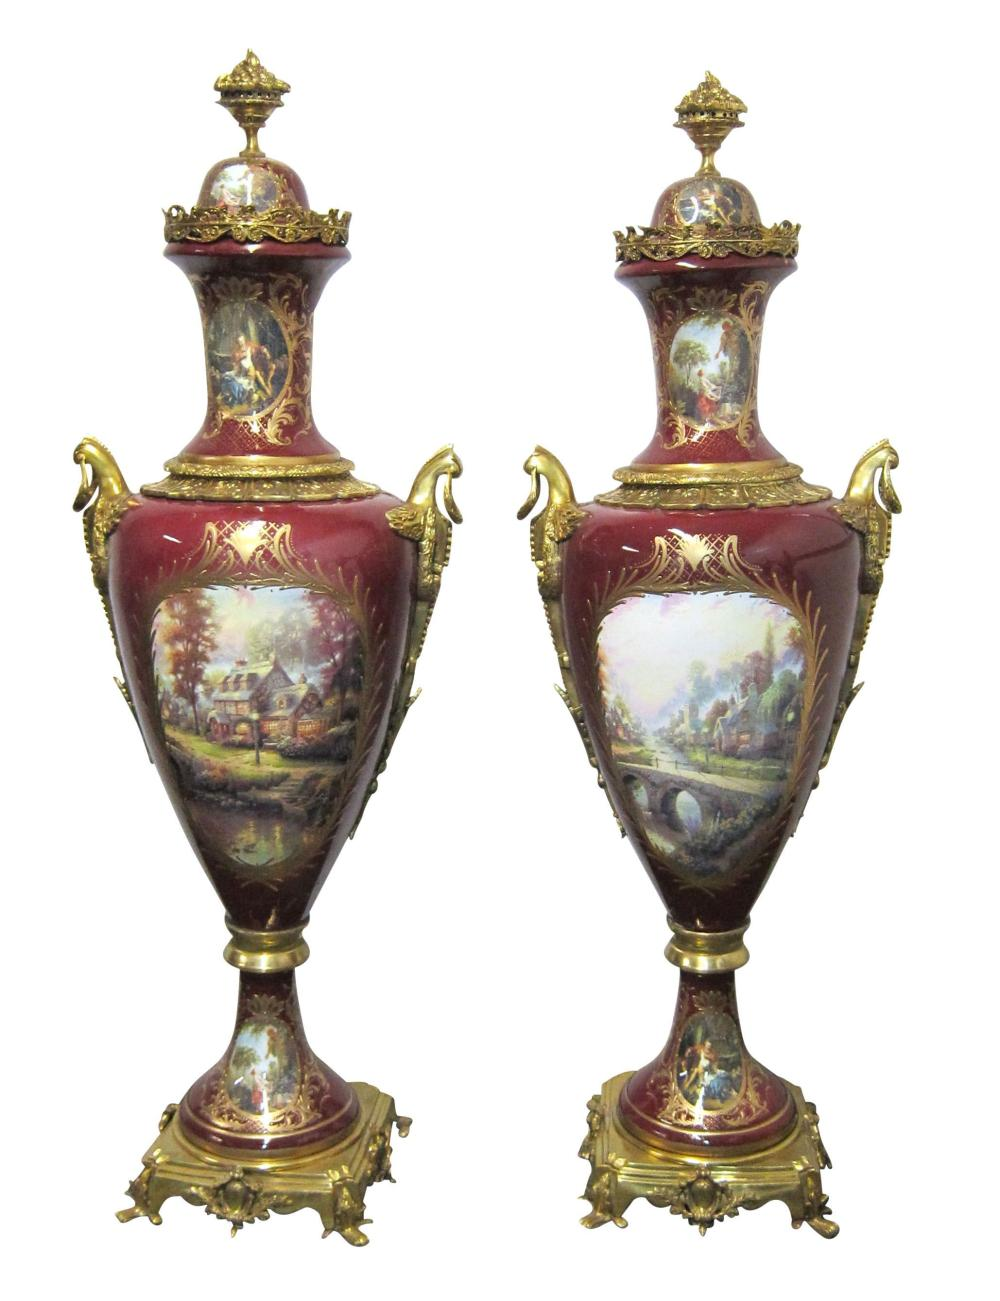 Pair of red urns